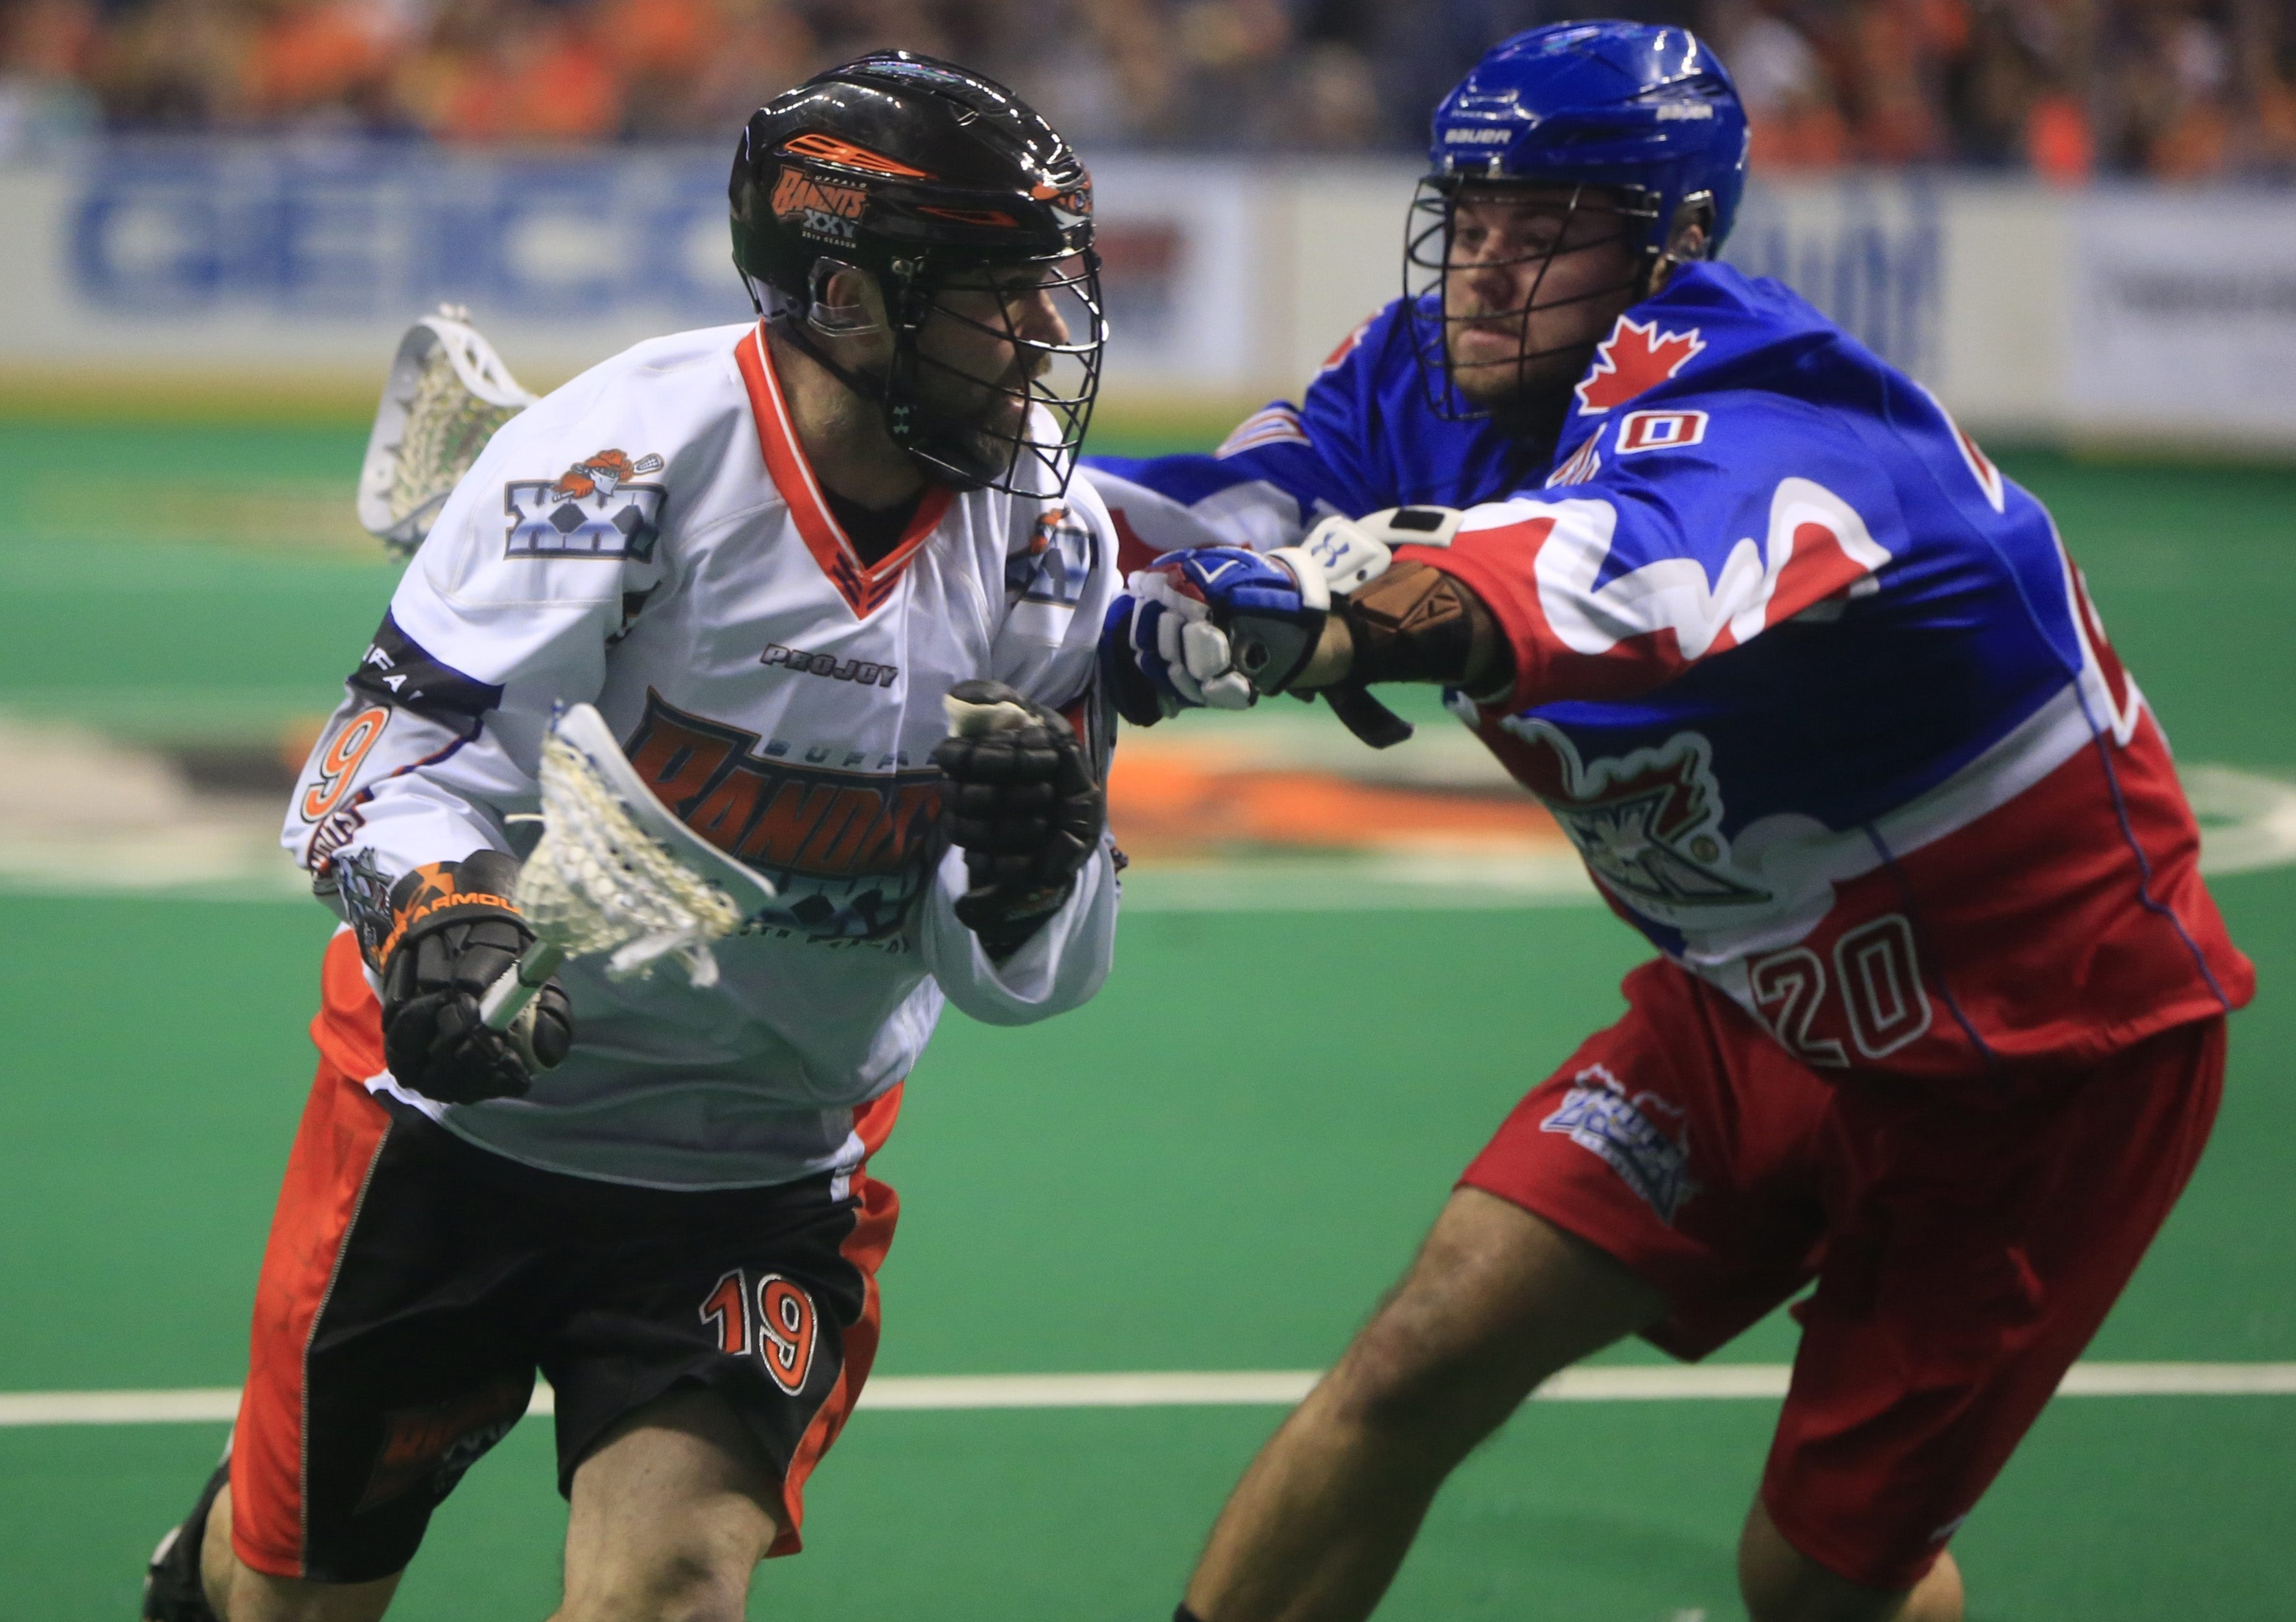 Chad Culp of the Bandits is defended by the Toronto's Bradley Kri during first-quarter action at First Niagara Center on Saturday.